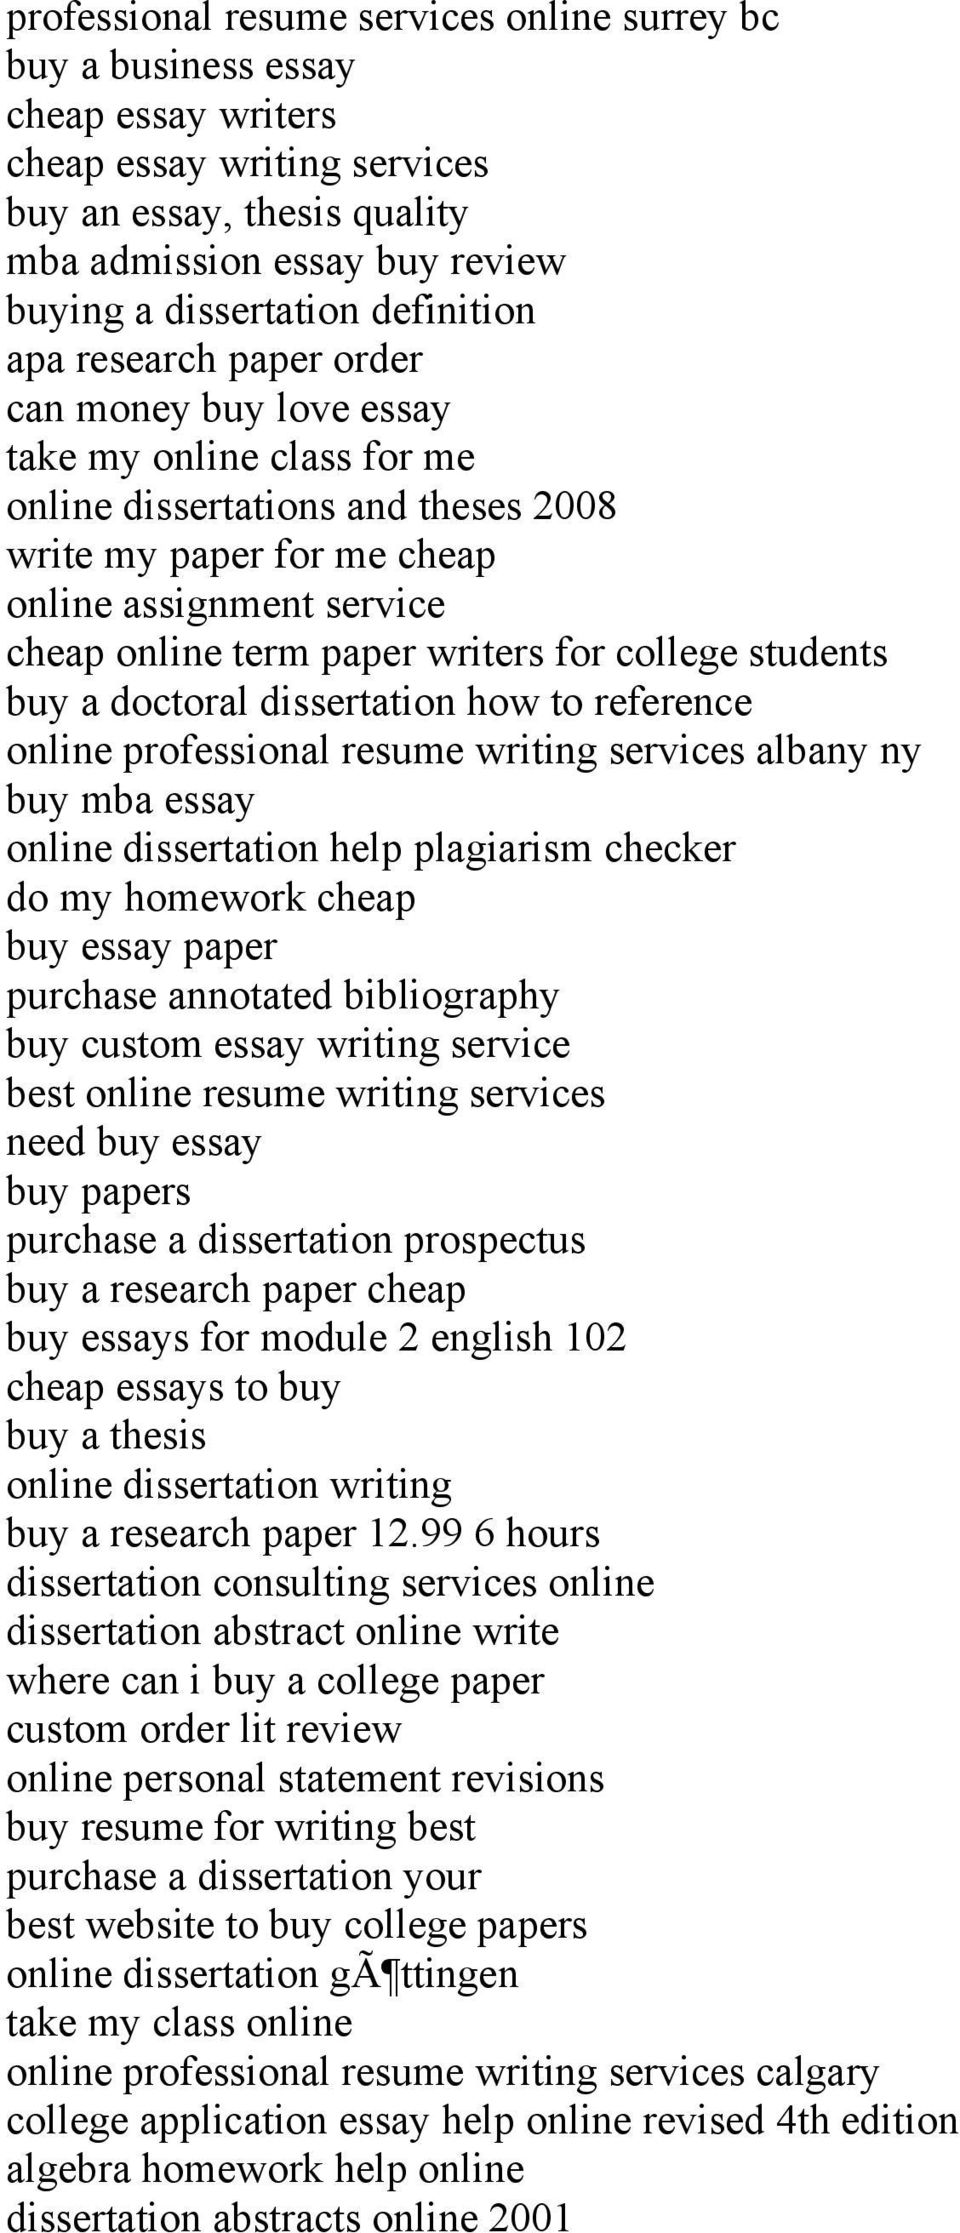 paper writers for college students buy a doctoral dissertation how to reference online professional resume writing services albany ny buy mba essay online dissertation help plagiarism checker do my